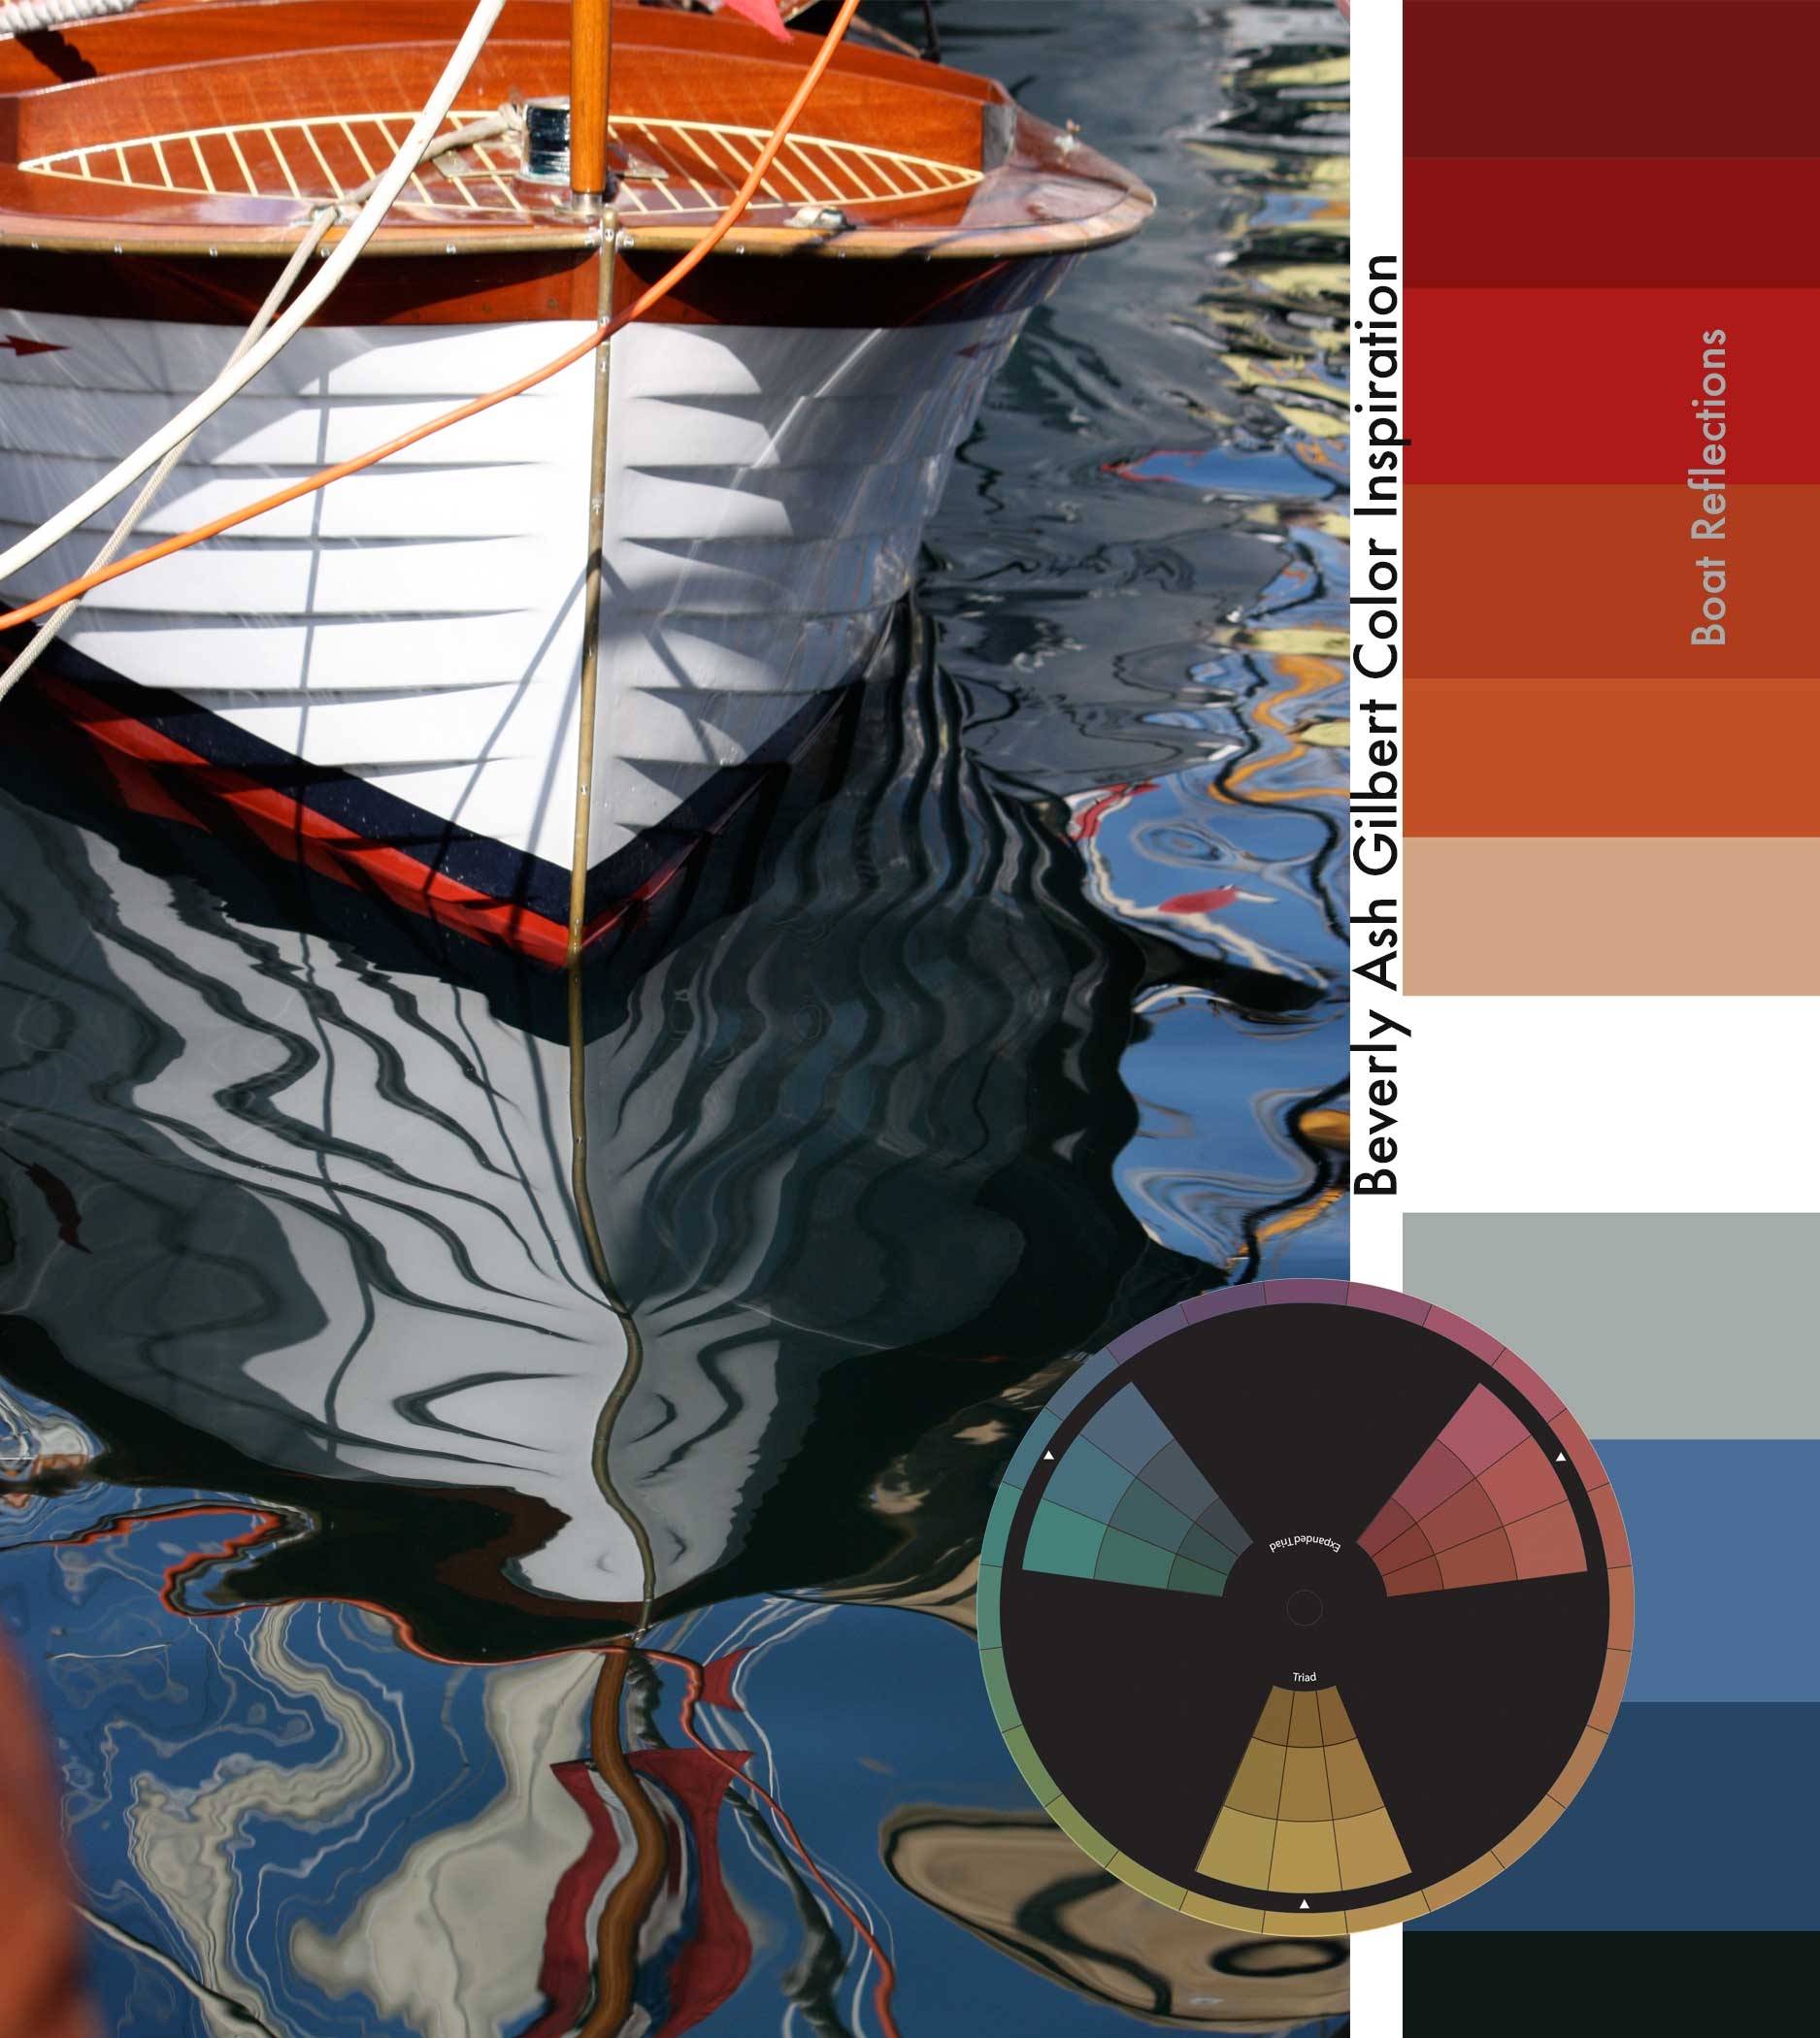 ColorInspiration_BoatReflections_small.jpg